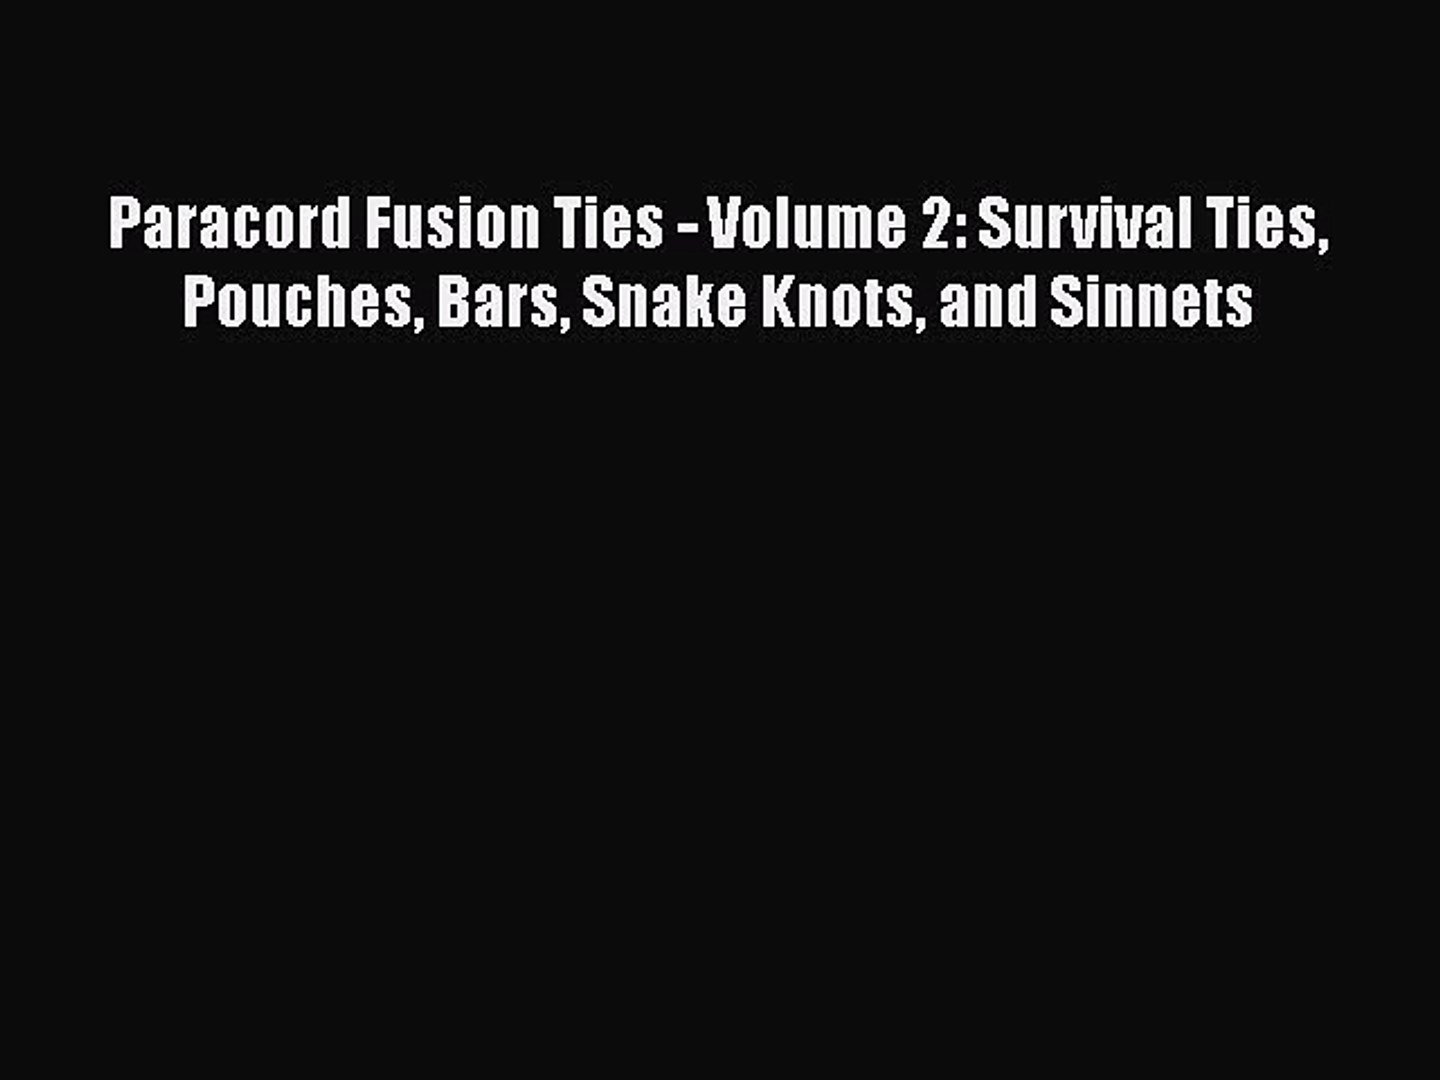 PDF Paracord Fusion Ties - Volume 2: Survival Ties Pouches Bars Snake Knots and Sinnets Free